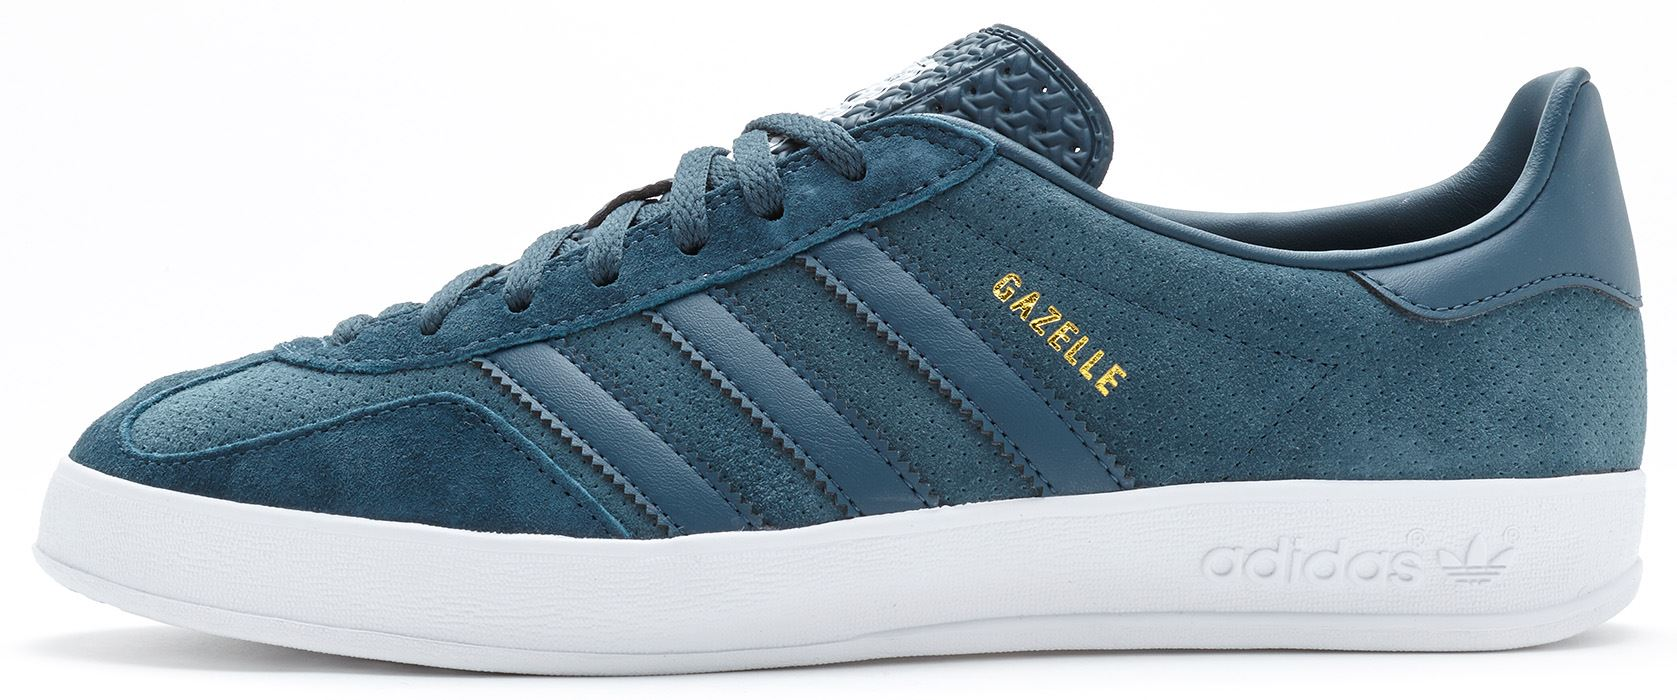 adidas indoor gazelle